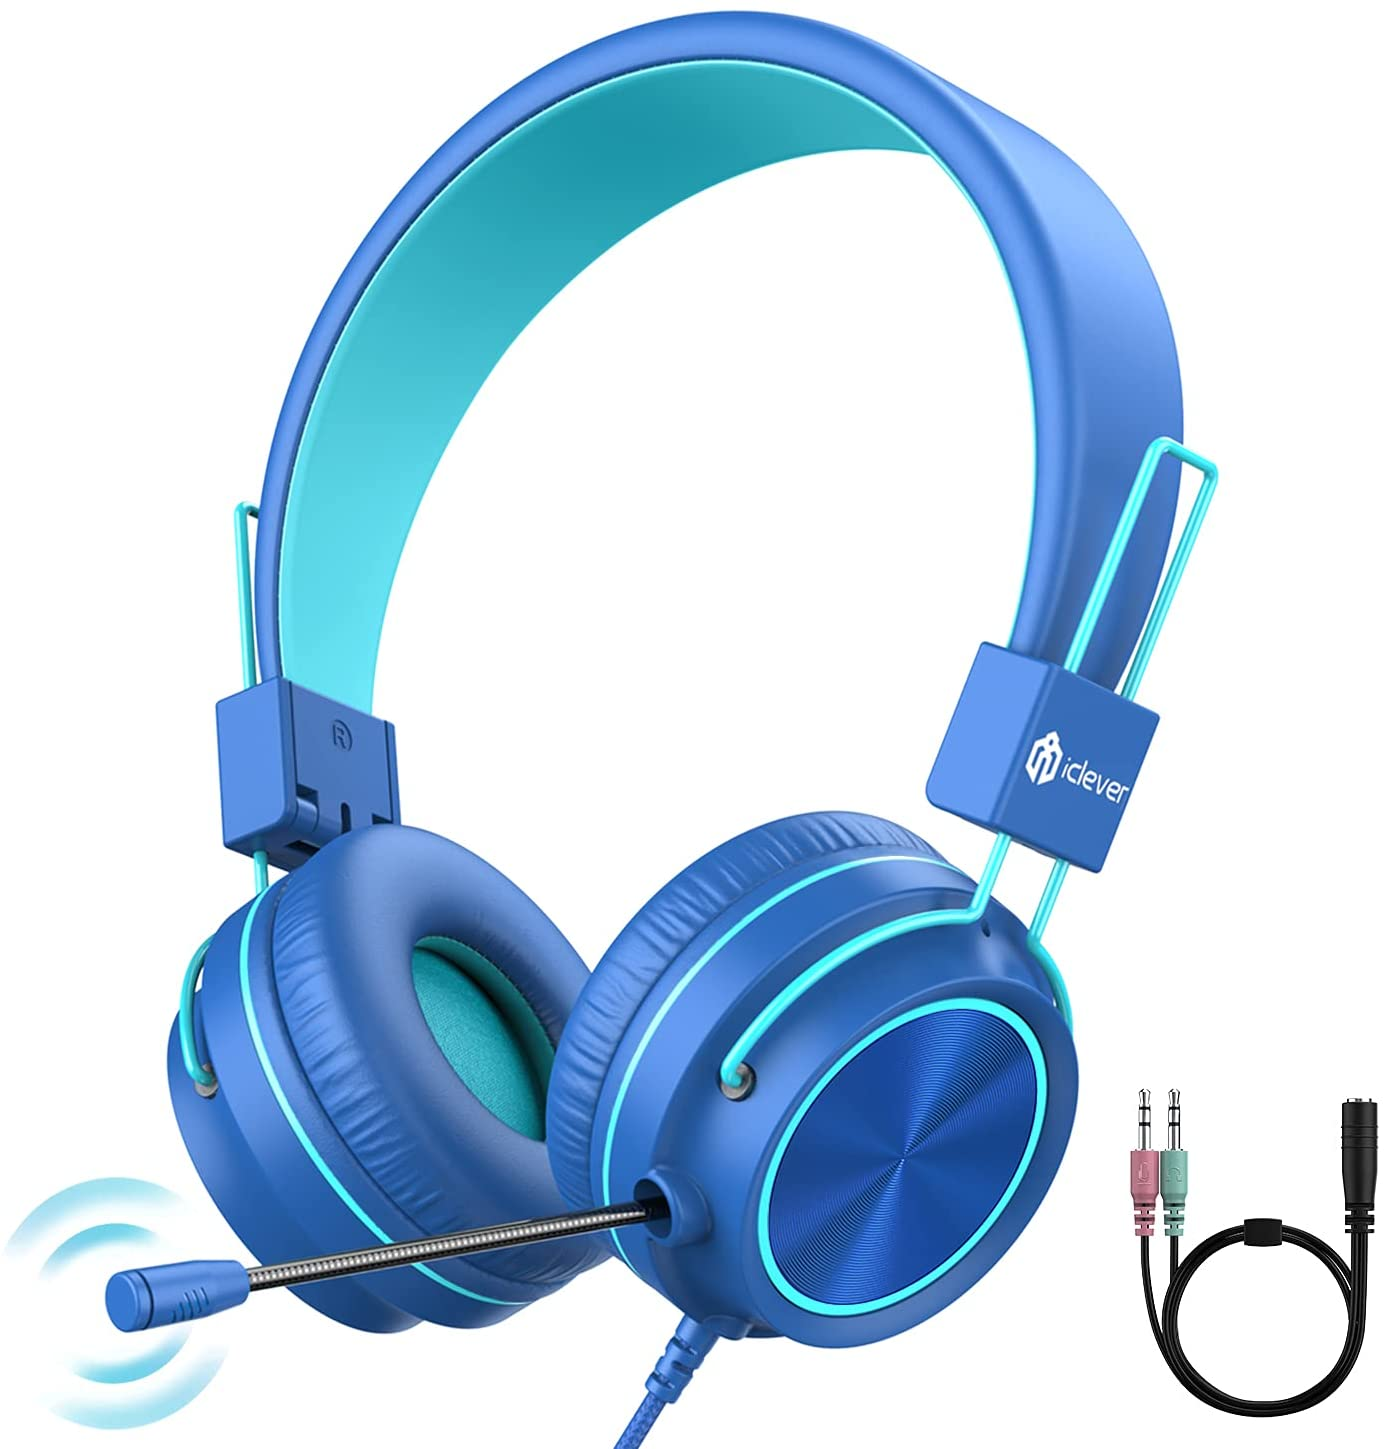 iClever HS21 Kids Headphones with Microphone for Virtual School- Rotatable Extendable Mic - 94 dB Volume-Safe Headphones for Kids, Wired Foldable Kids Gaming Headset for PS4/Xbox One/Switch/PC/Tablet